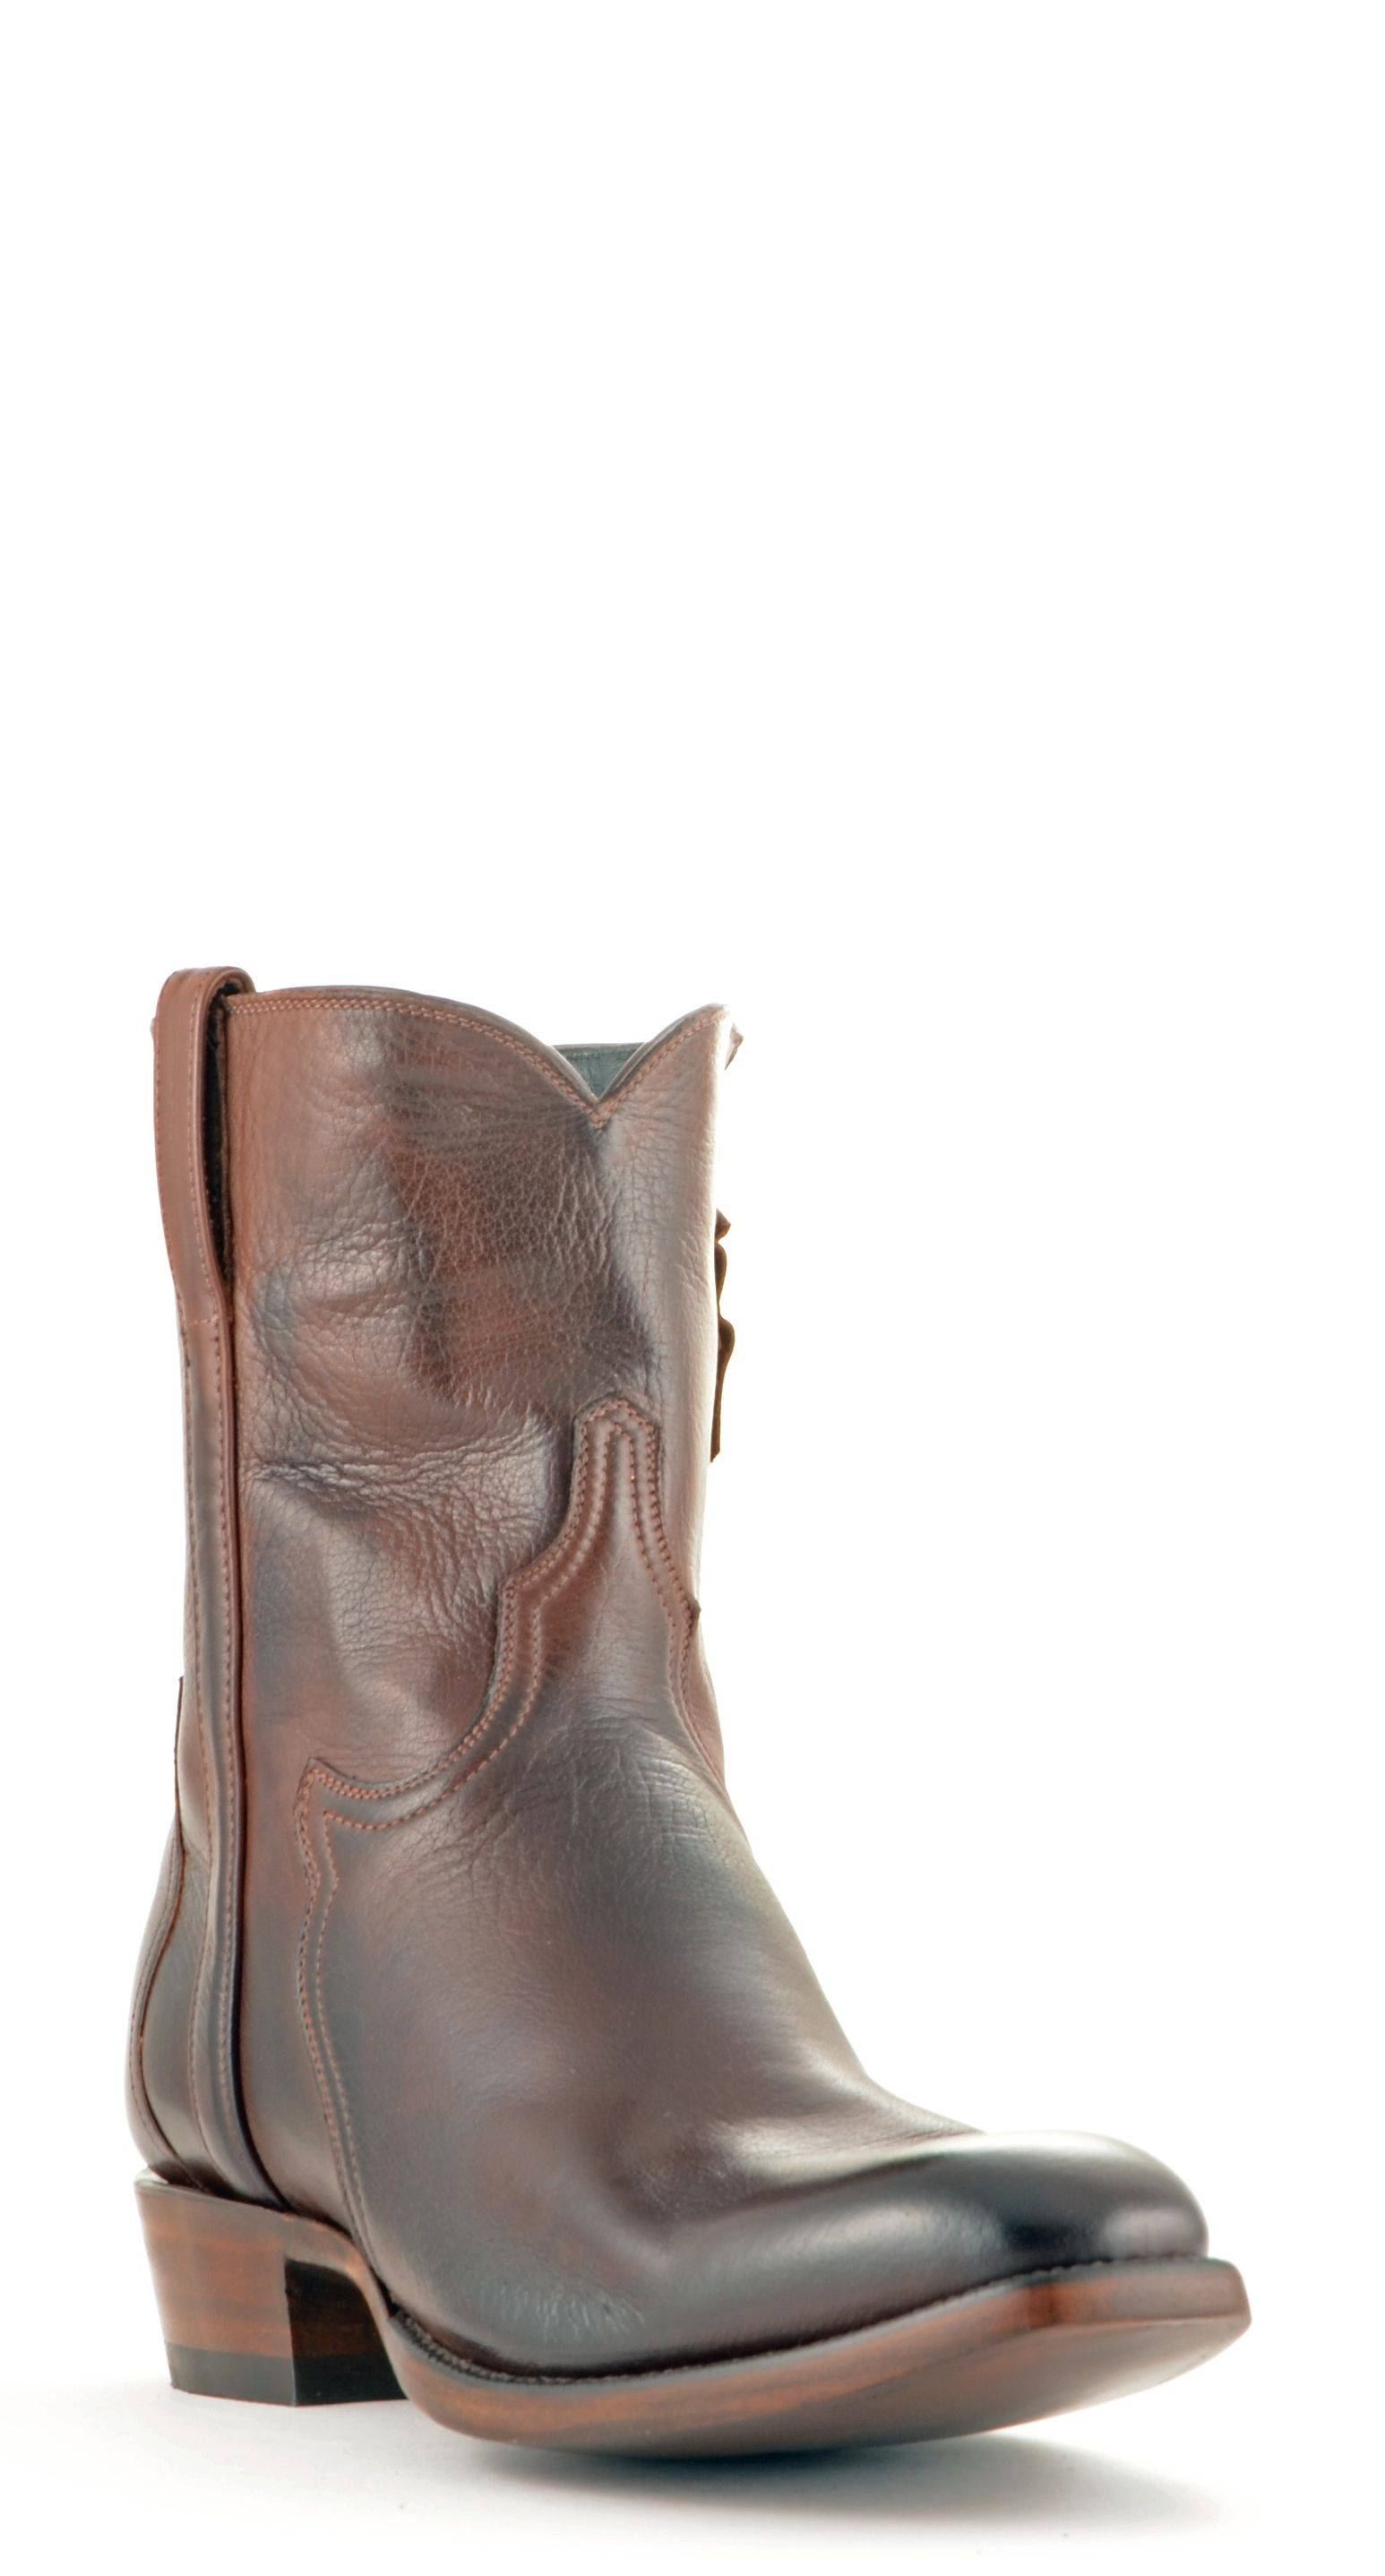 fa1c06b54f4 Men's Lucchese Classics Baby Buffalo Boots Wyoming Brown #F5053 ...